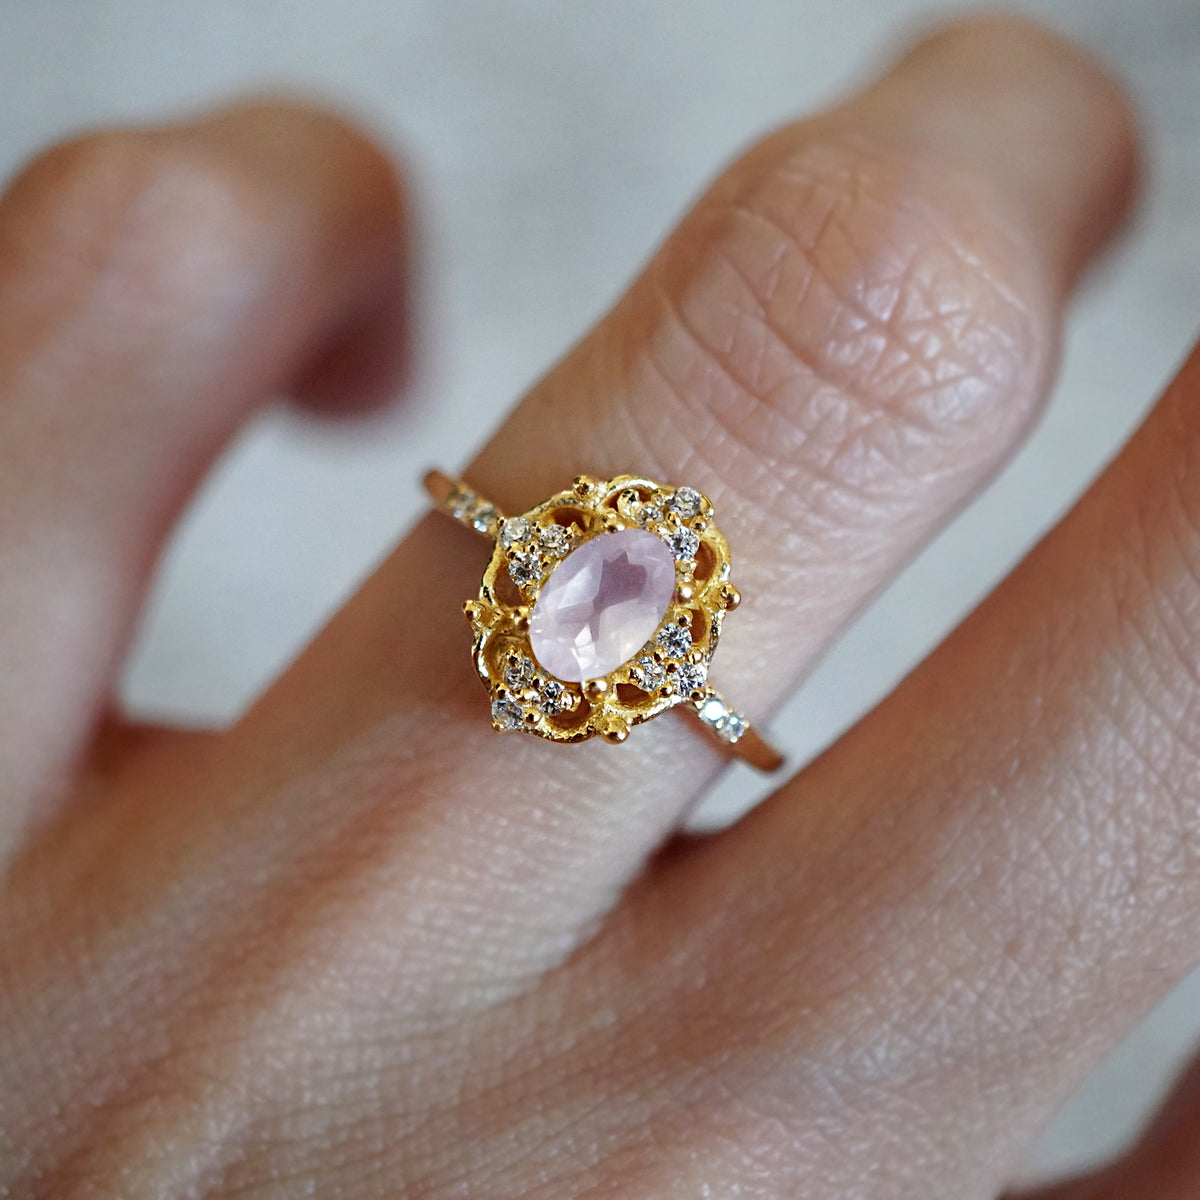 Cosmic Rose Quartz Ring - Tippy Taste Jewelry